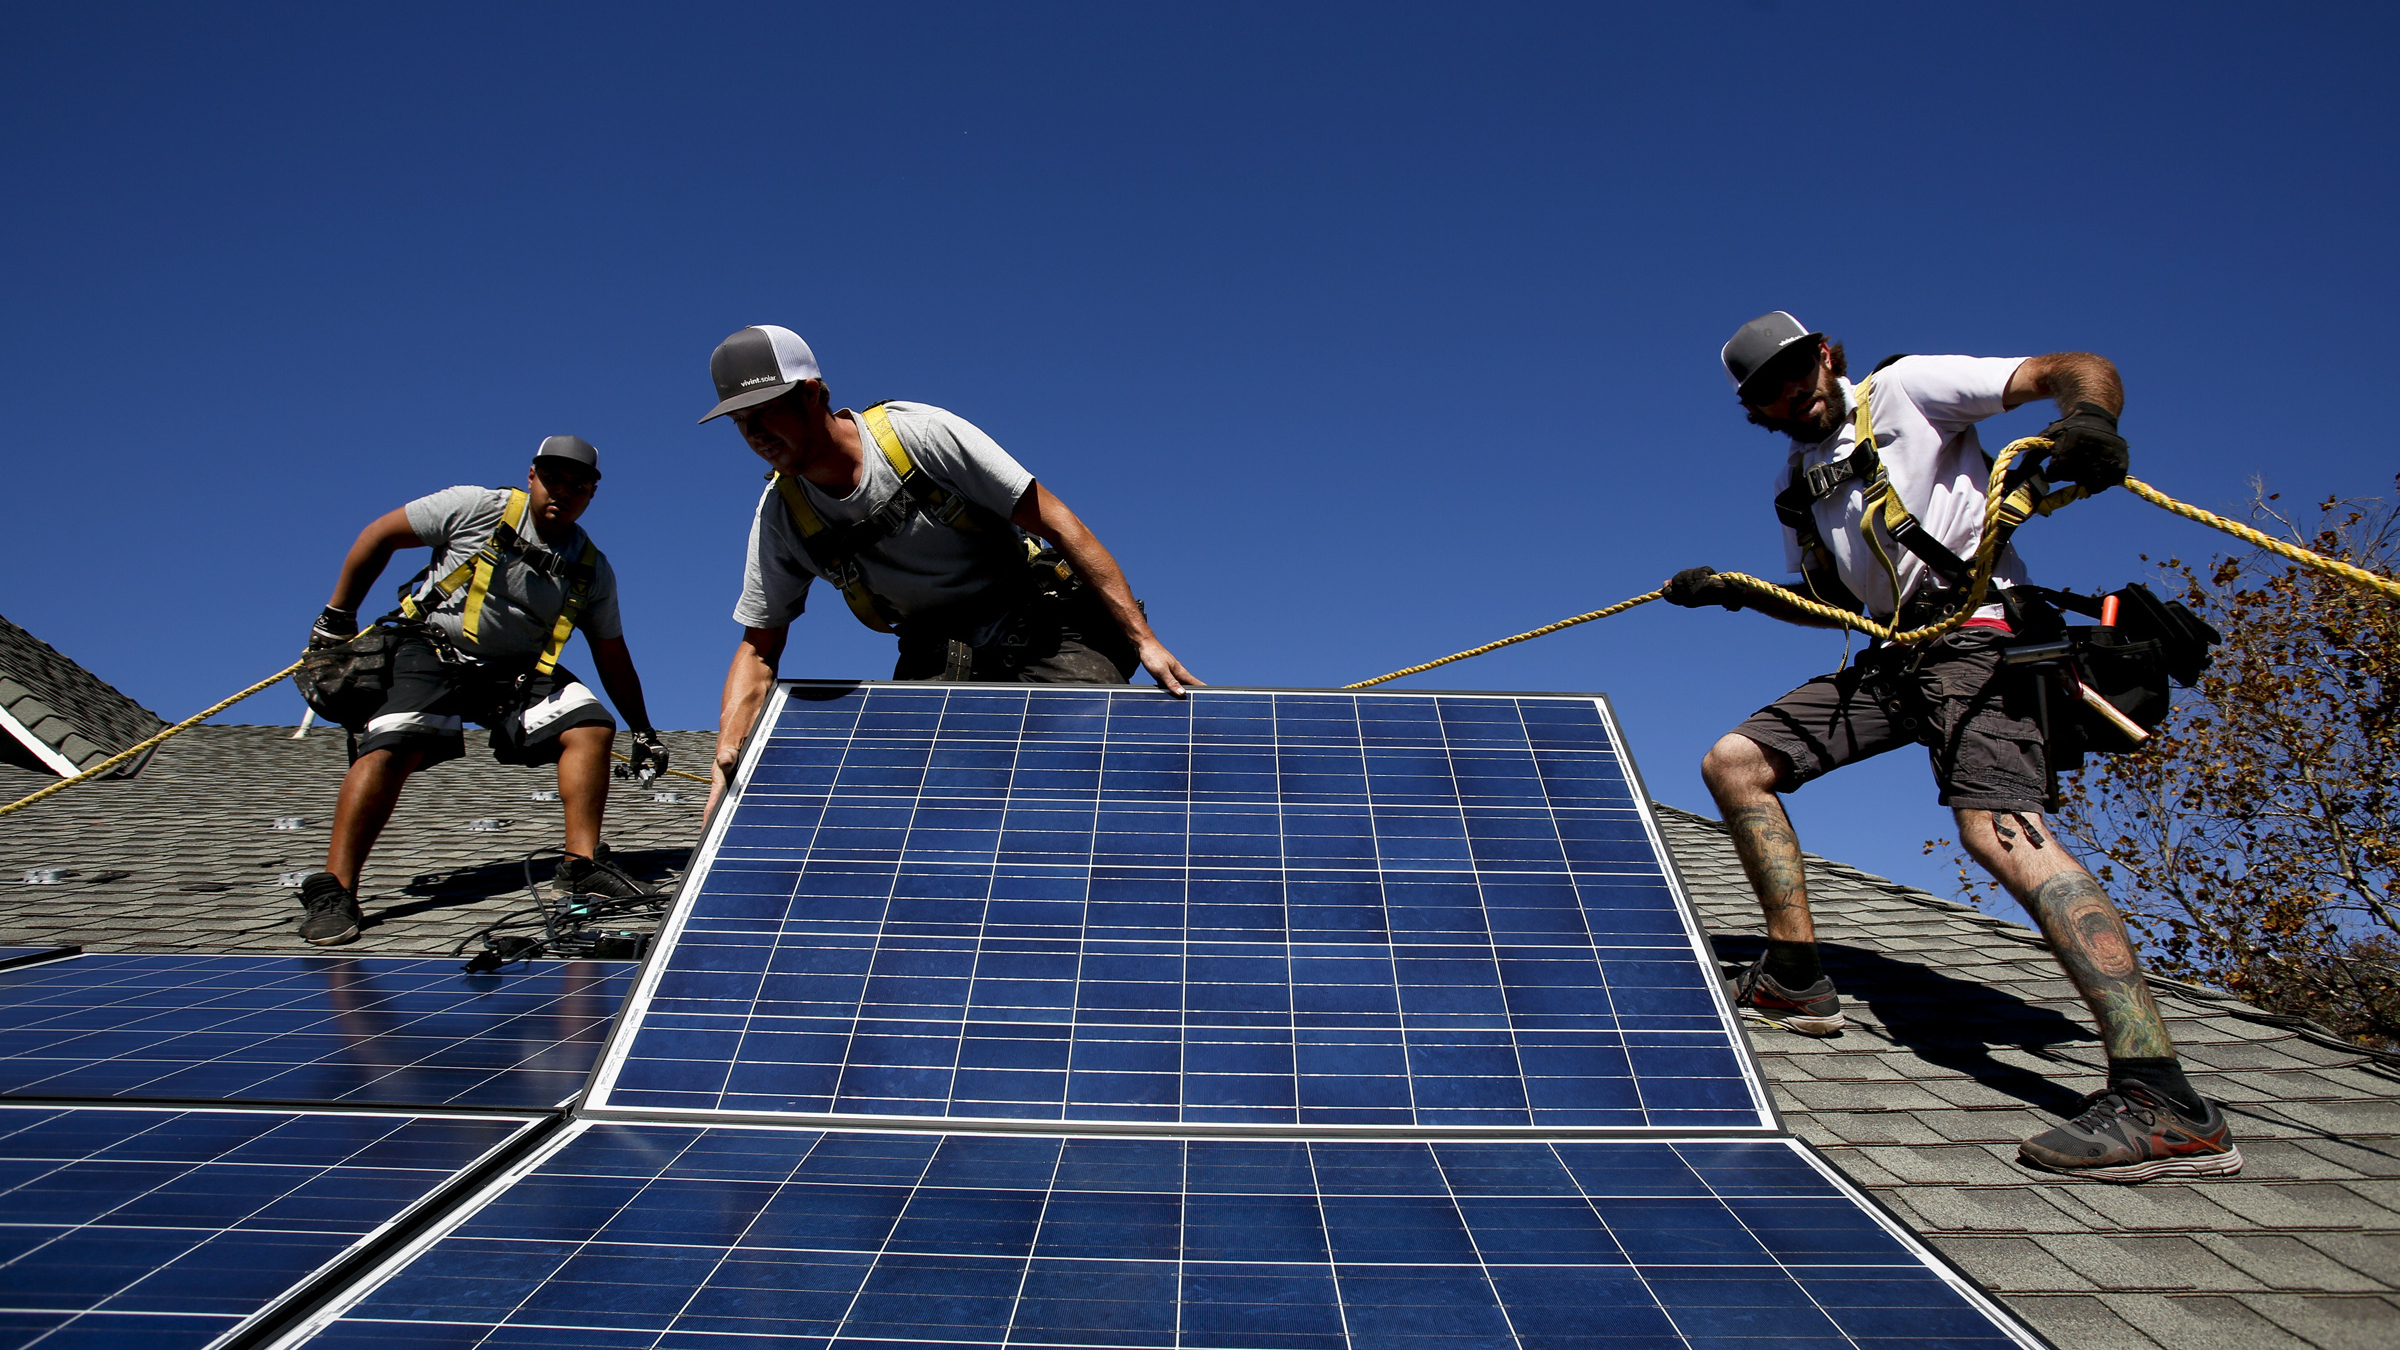 Workers install solar panels on the roof of a home in Camarillo in 2013. San Francisco has recently decided to start requiring rooftop solar systems — electrical or heating — on new construction up to 10 stories tall.